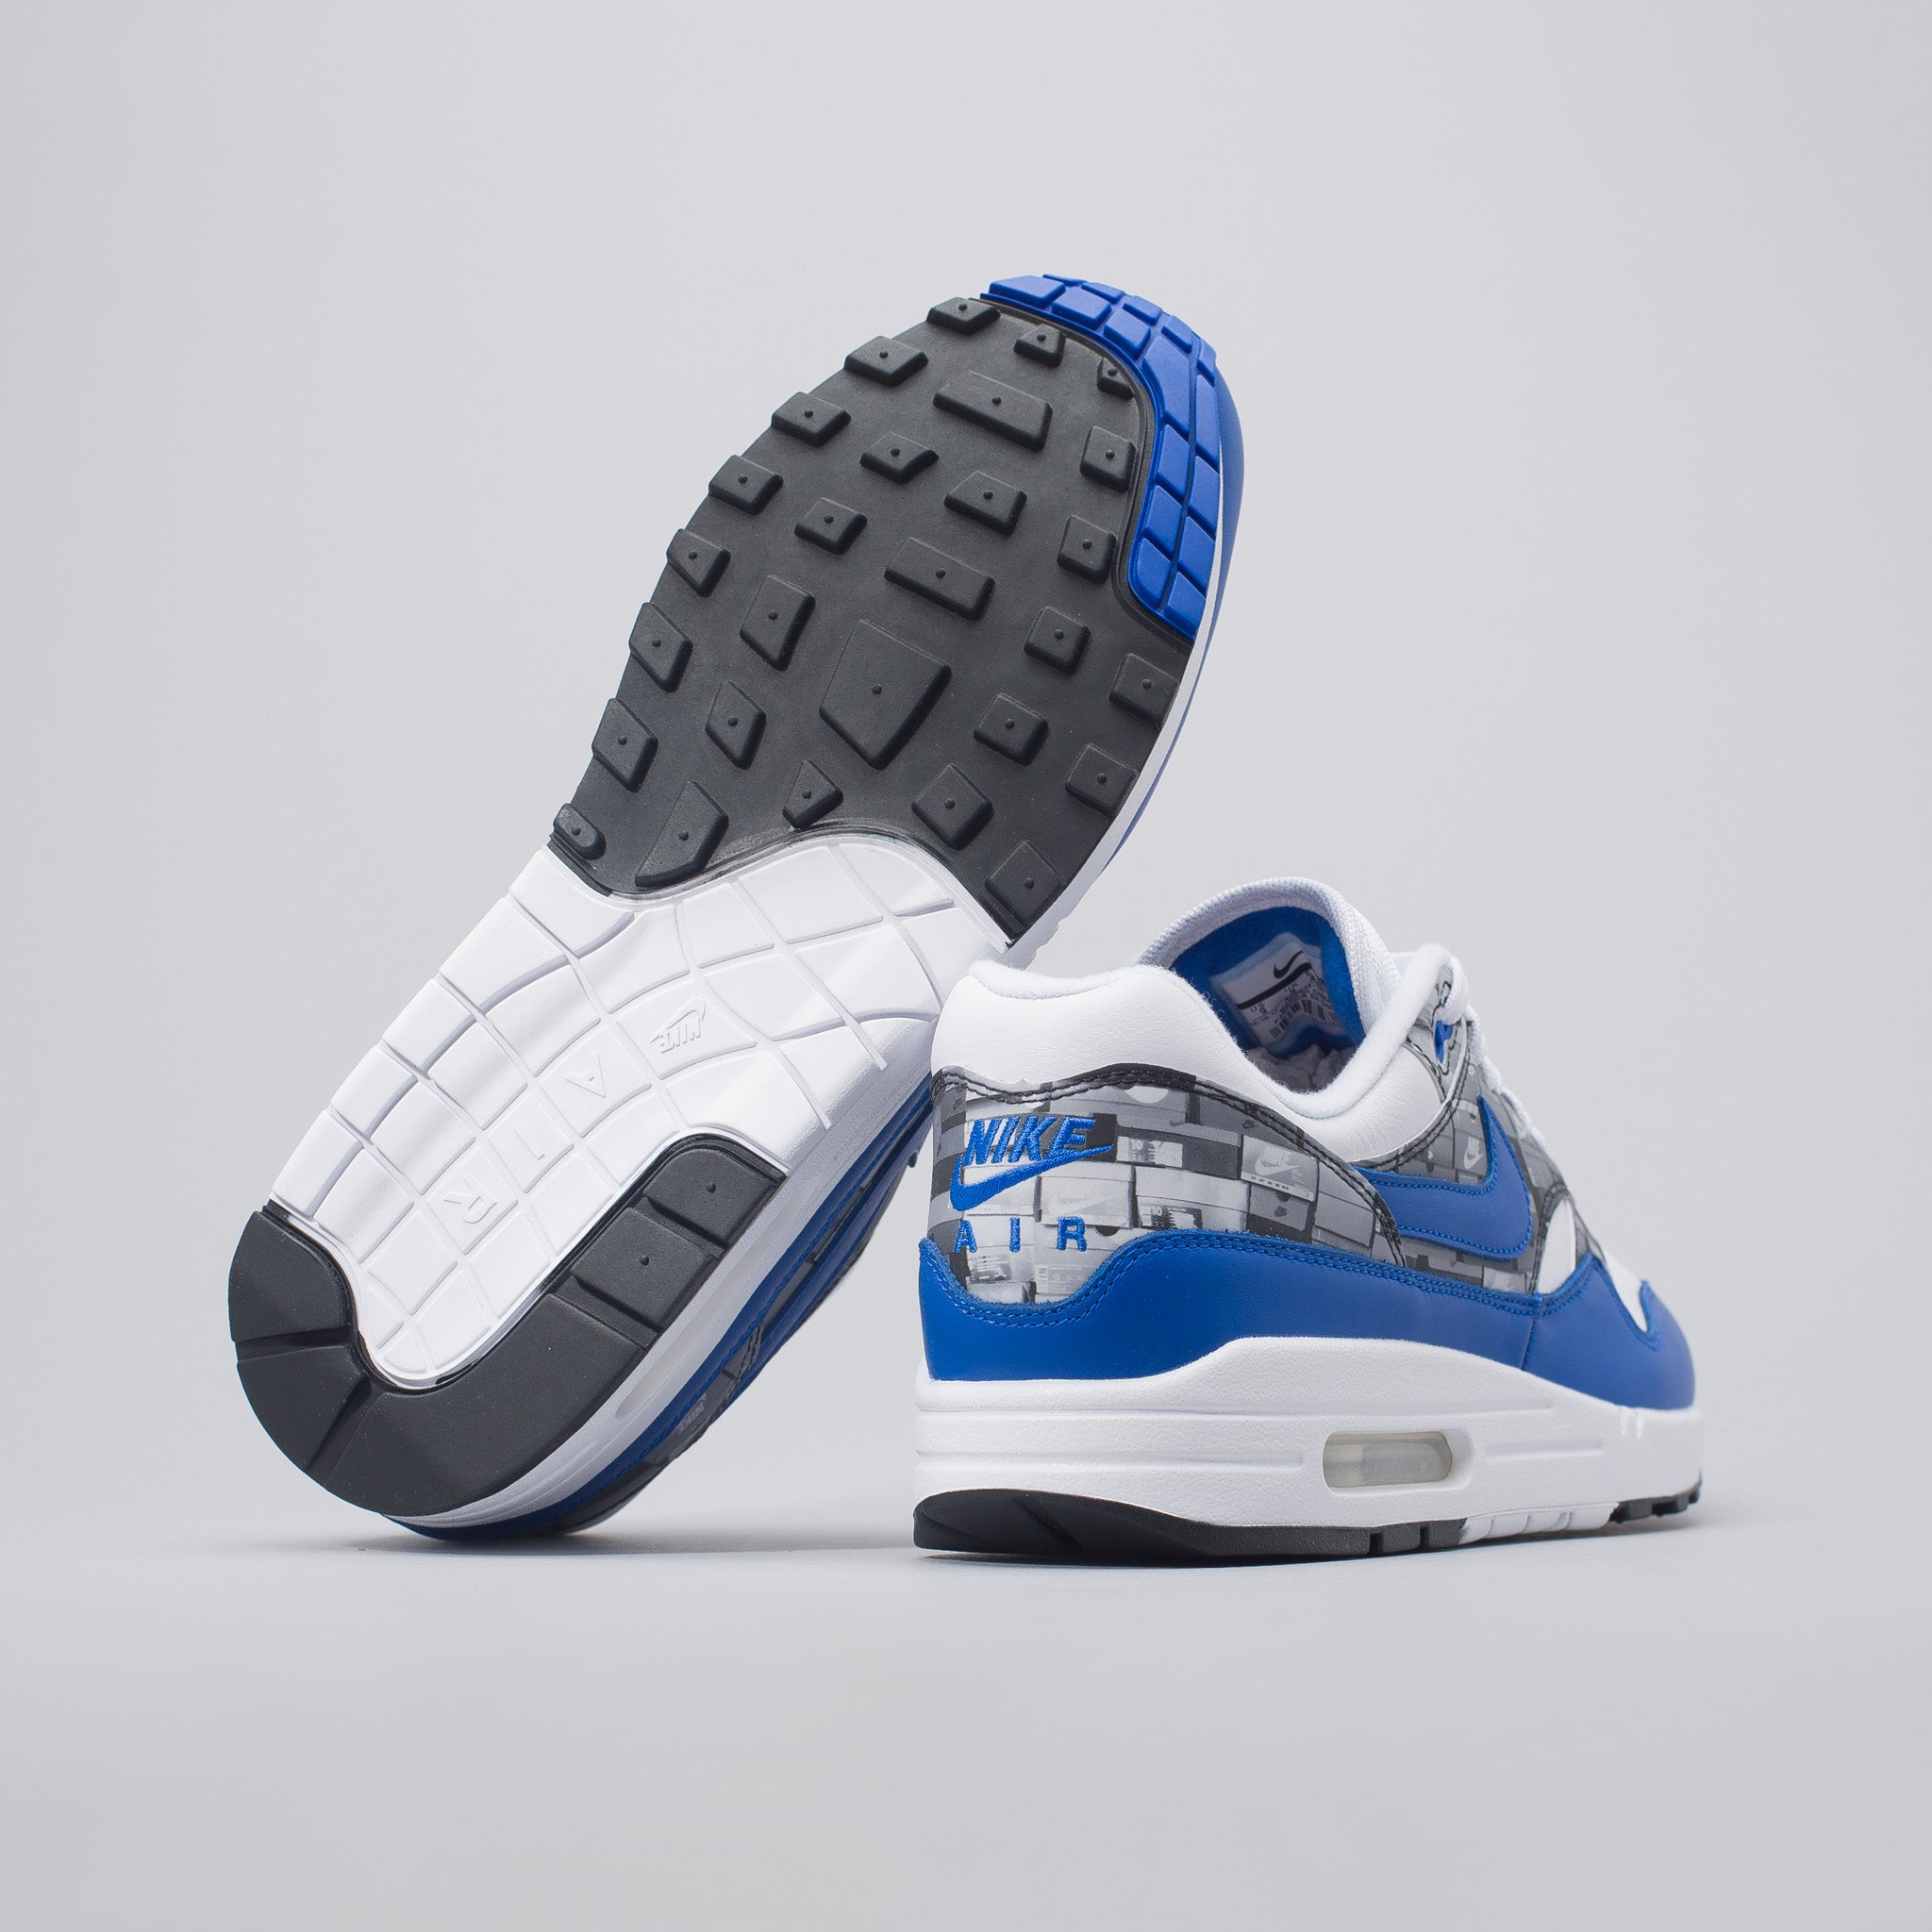 x atmos 'We Love Nike' Air Max 1  in White/Royal